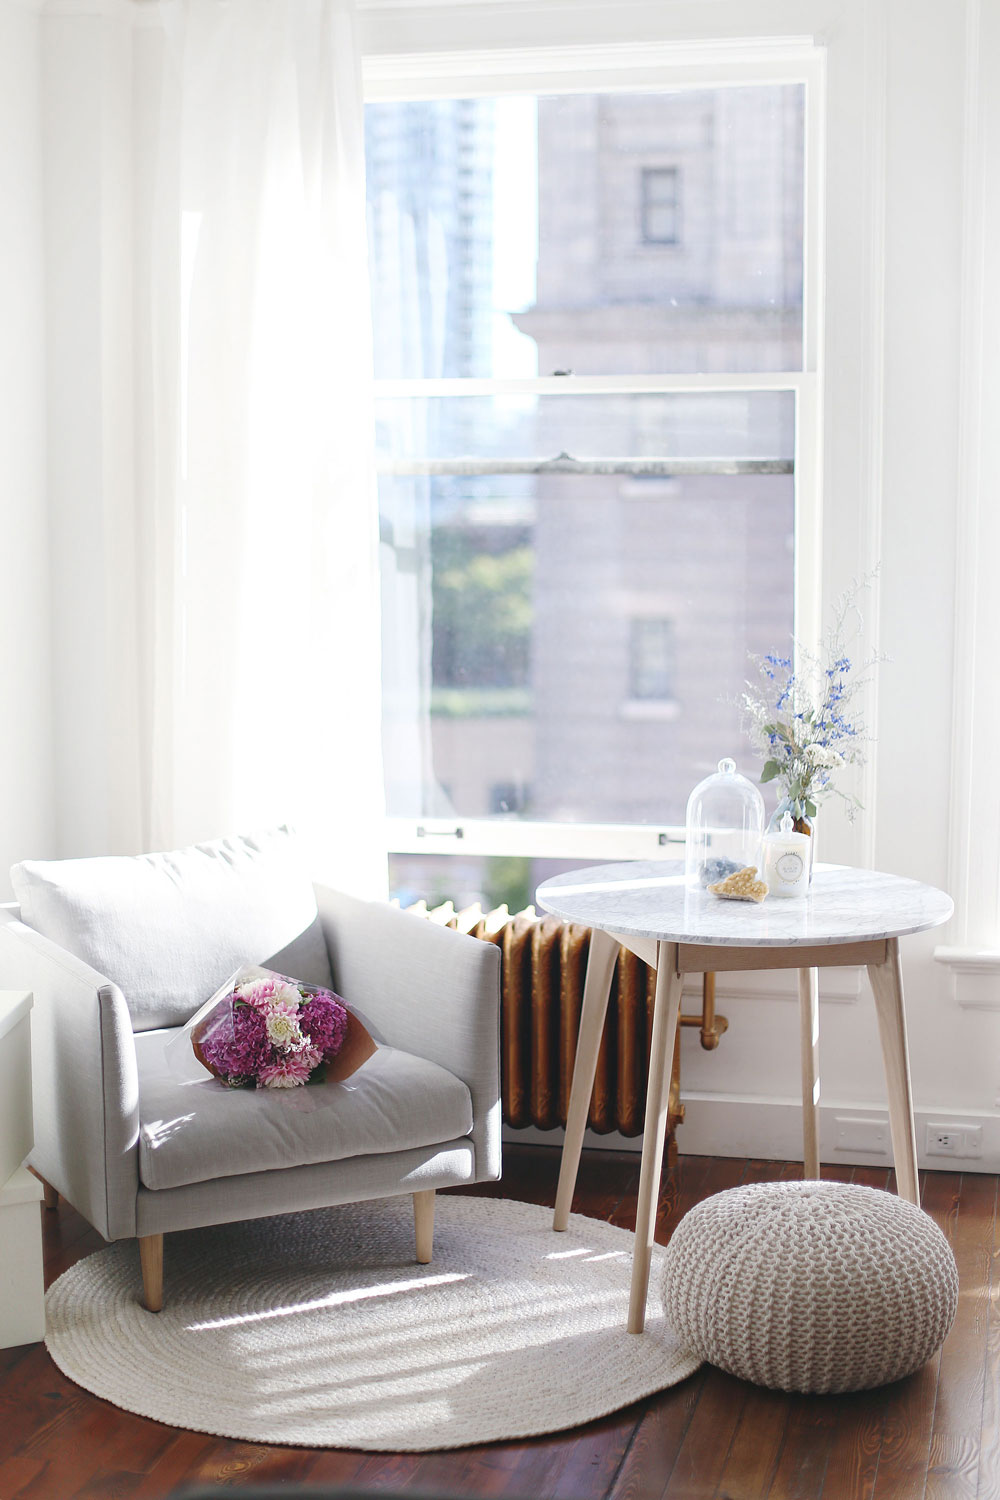 Airy studio space decor tips with marble coffee table, grey minimalist armchair, jute rug and Moroccan pouf by Article furniture